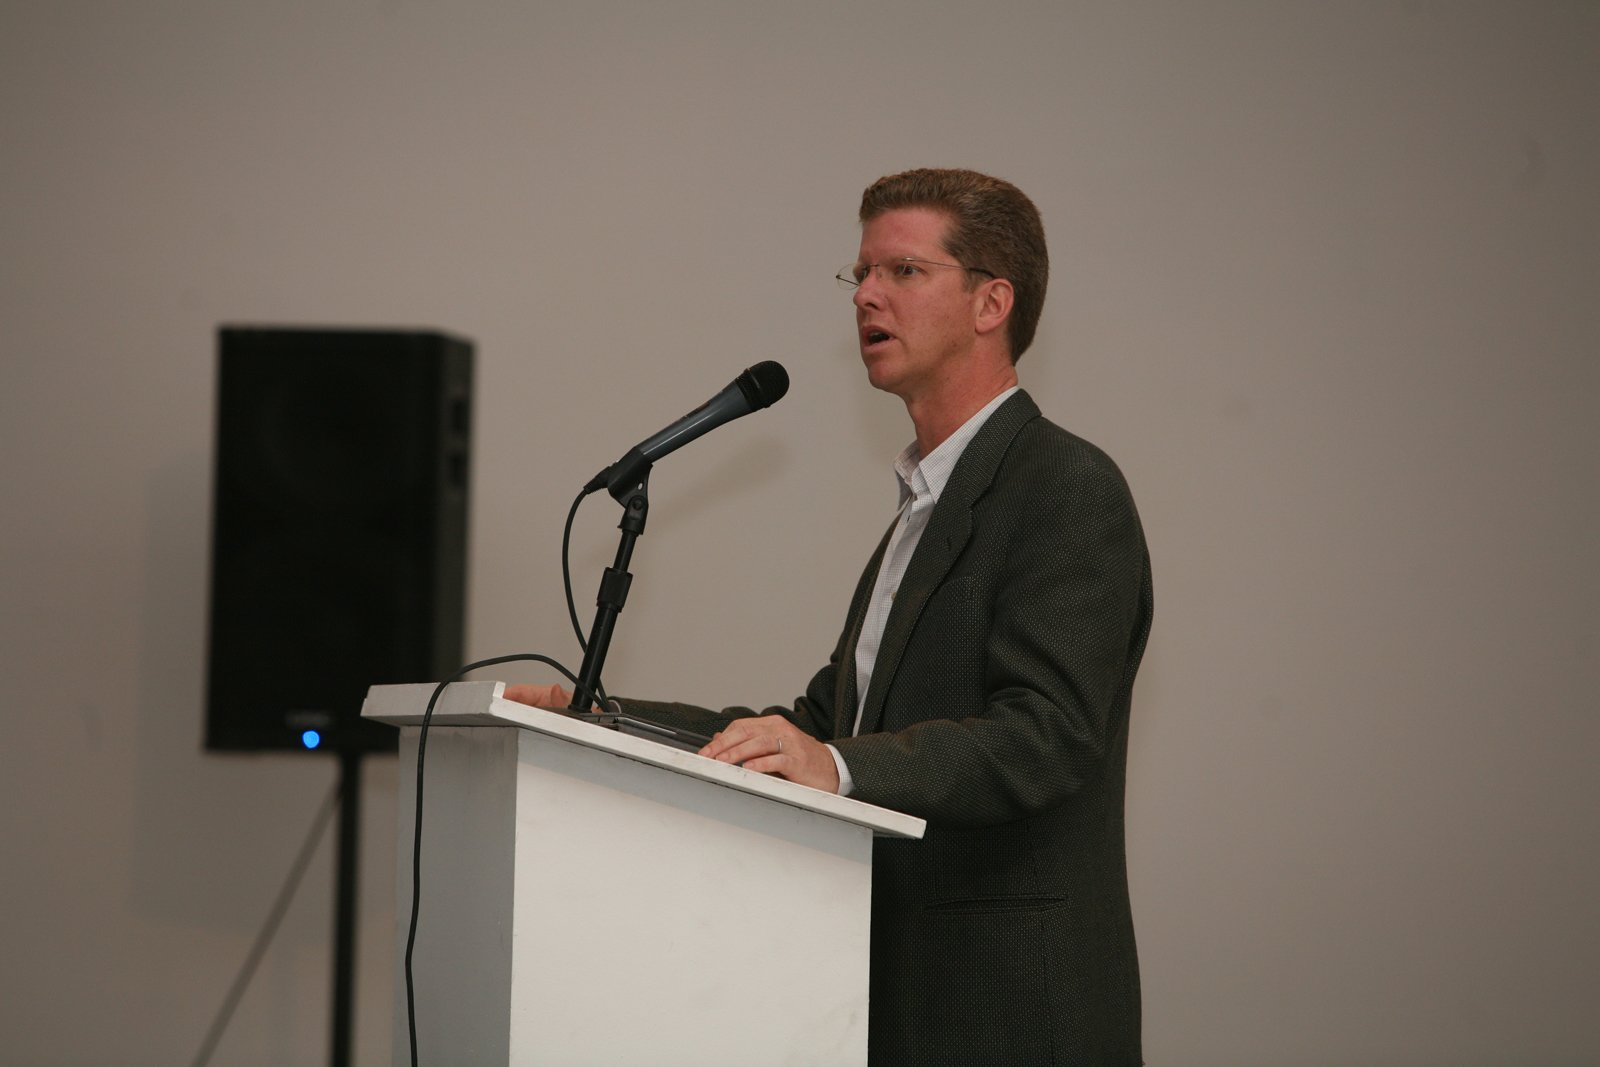 """Following the project presentations, U.S. Secretary of Housing and Urban Development Shaun Donovan delivered his address """"From Crisis to Opportunity: Rebuilding Communities in the Wake of Foreclosure.""""  Photo 3 of 7 in """"Foreclosed"""" Open Studio at PS1"""